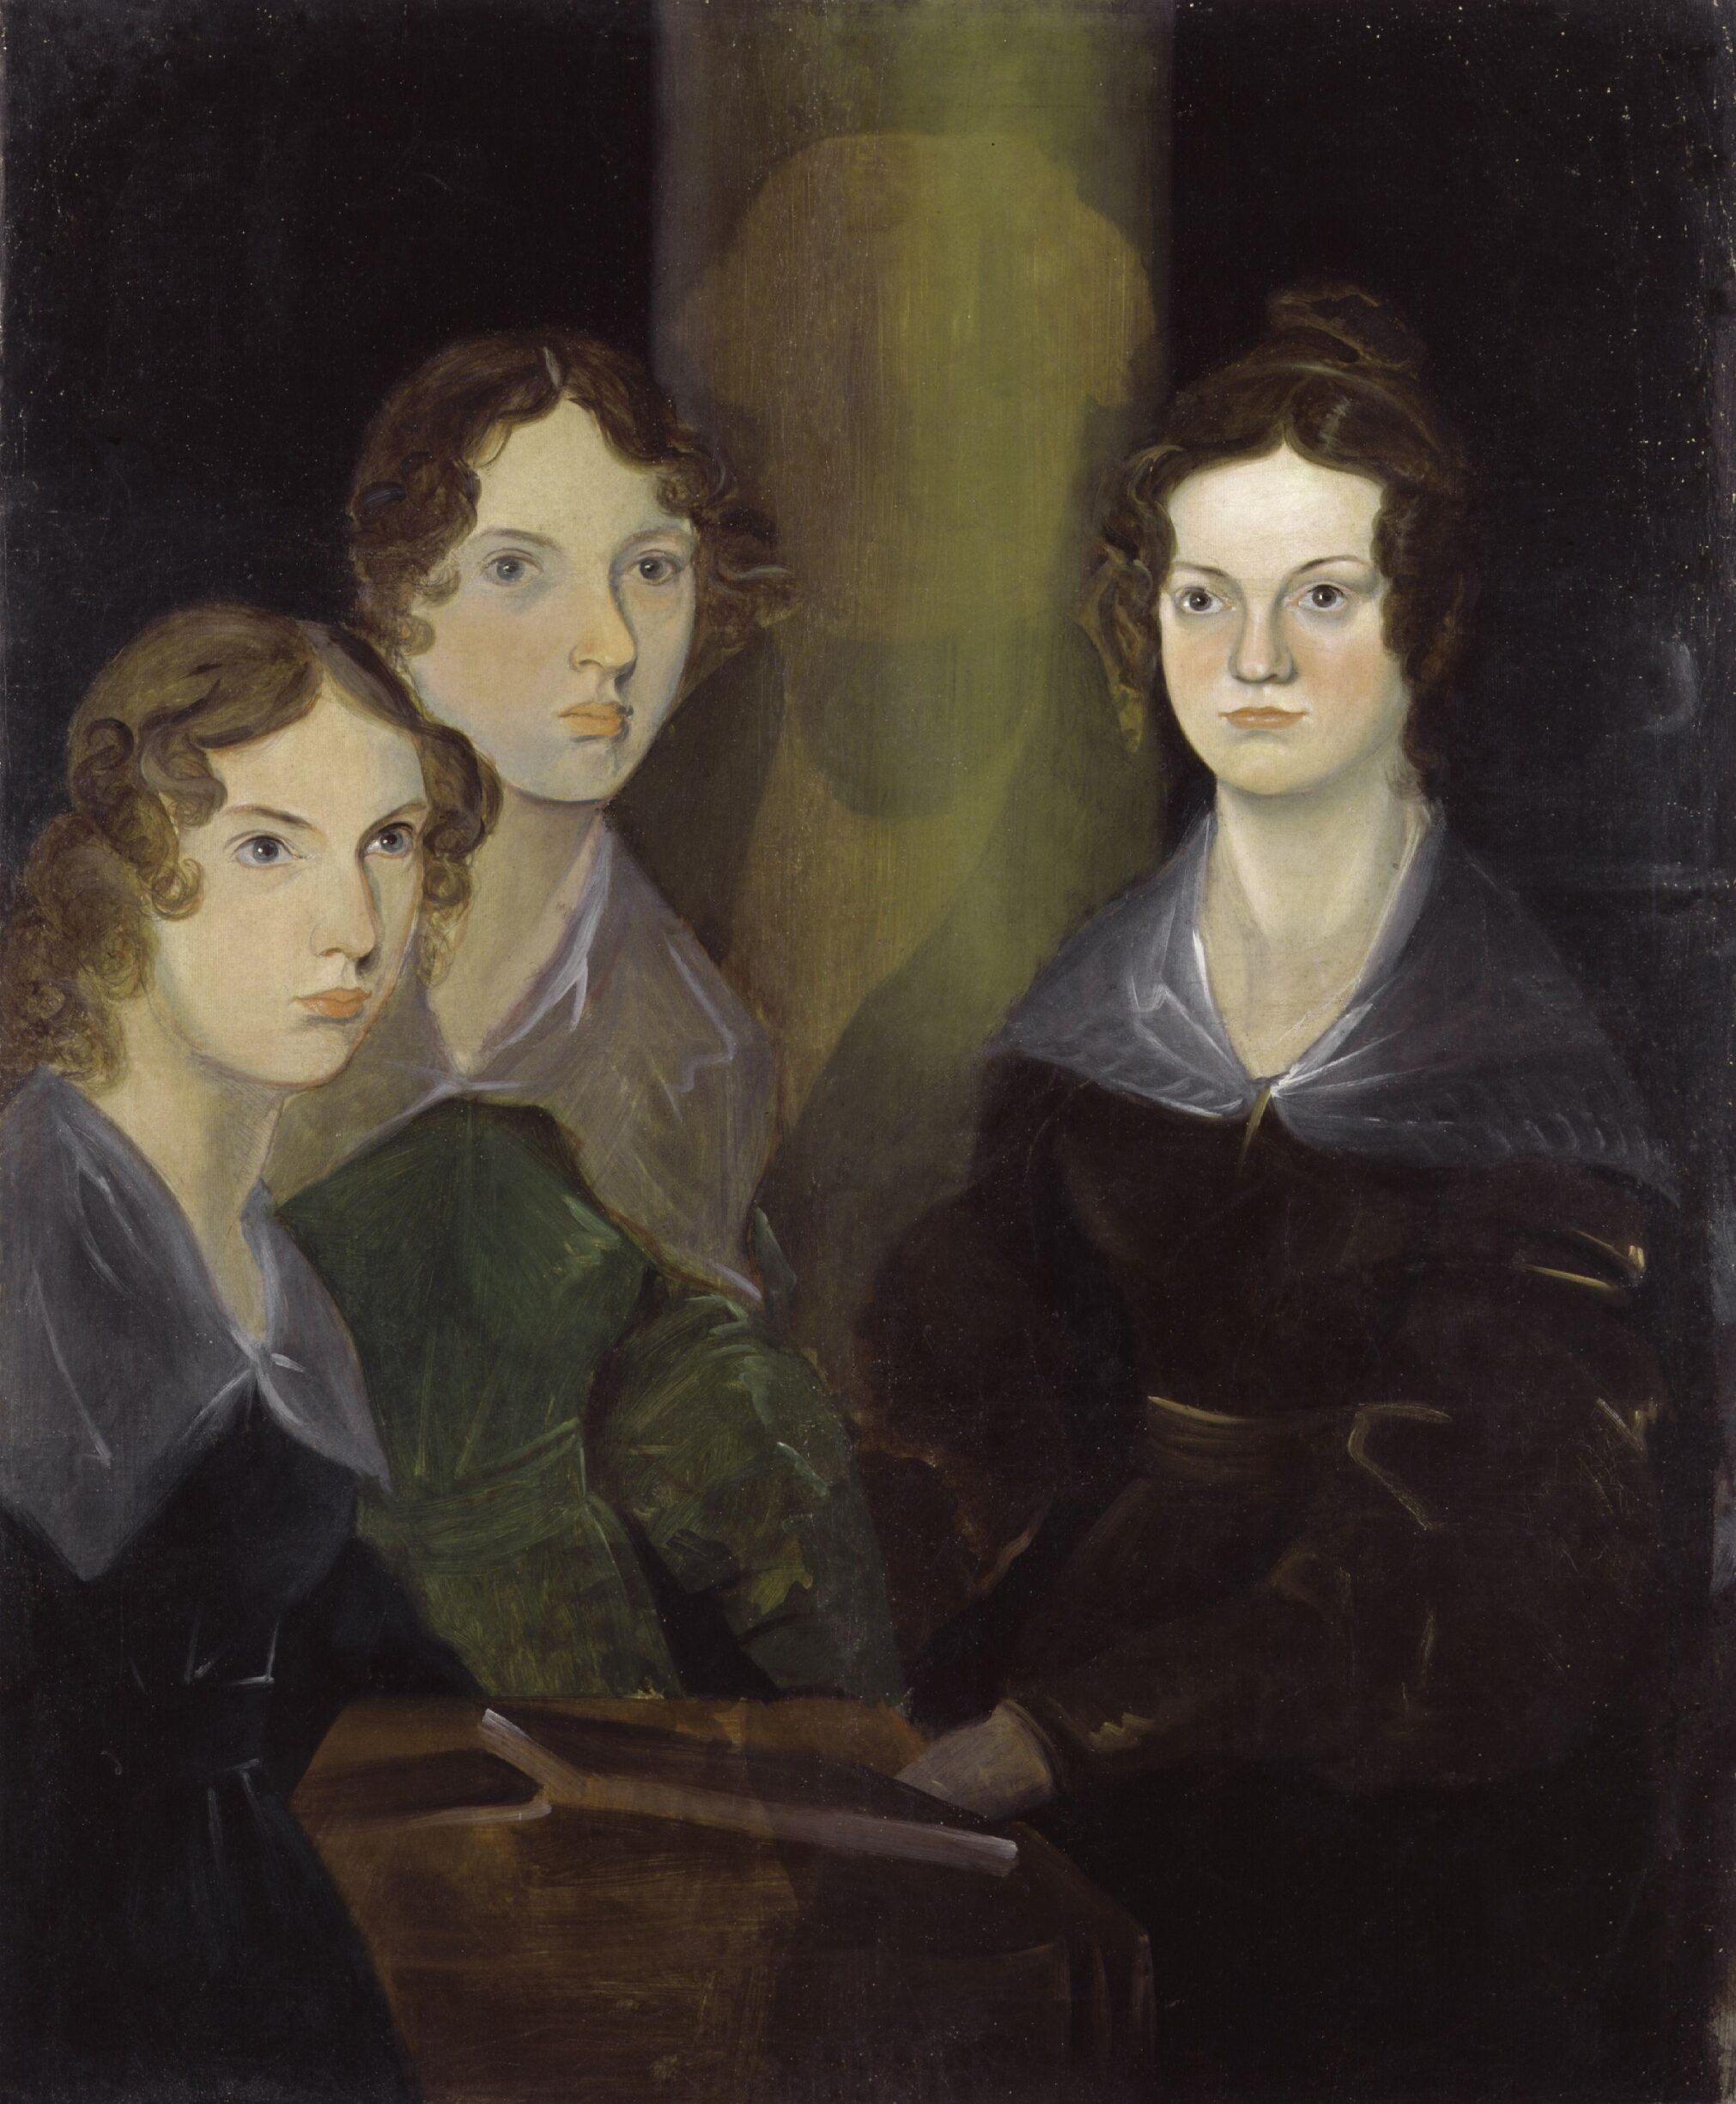 The Brontë Sisters (Anne Brontë; Emily Brontë; Charlotte Brontë), circa 1834. Oil on canvas painted by the brother Branwell Brontë (1817–1848). The original is placed on the British National Portrait Gallery. Digitally restored by National Portrait Gallery. Public Domain.